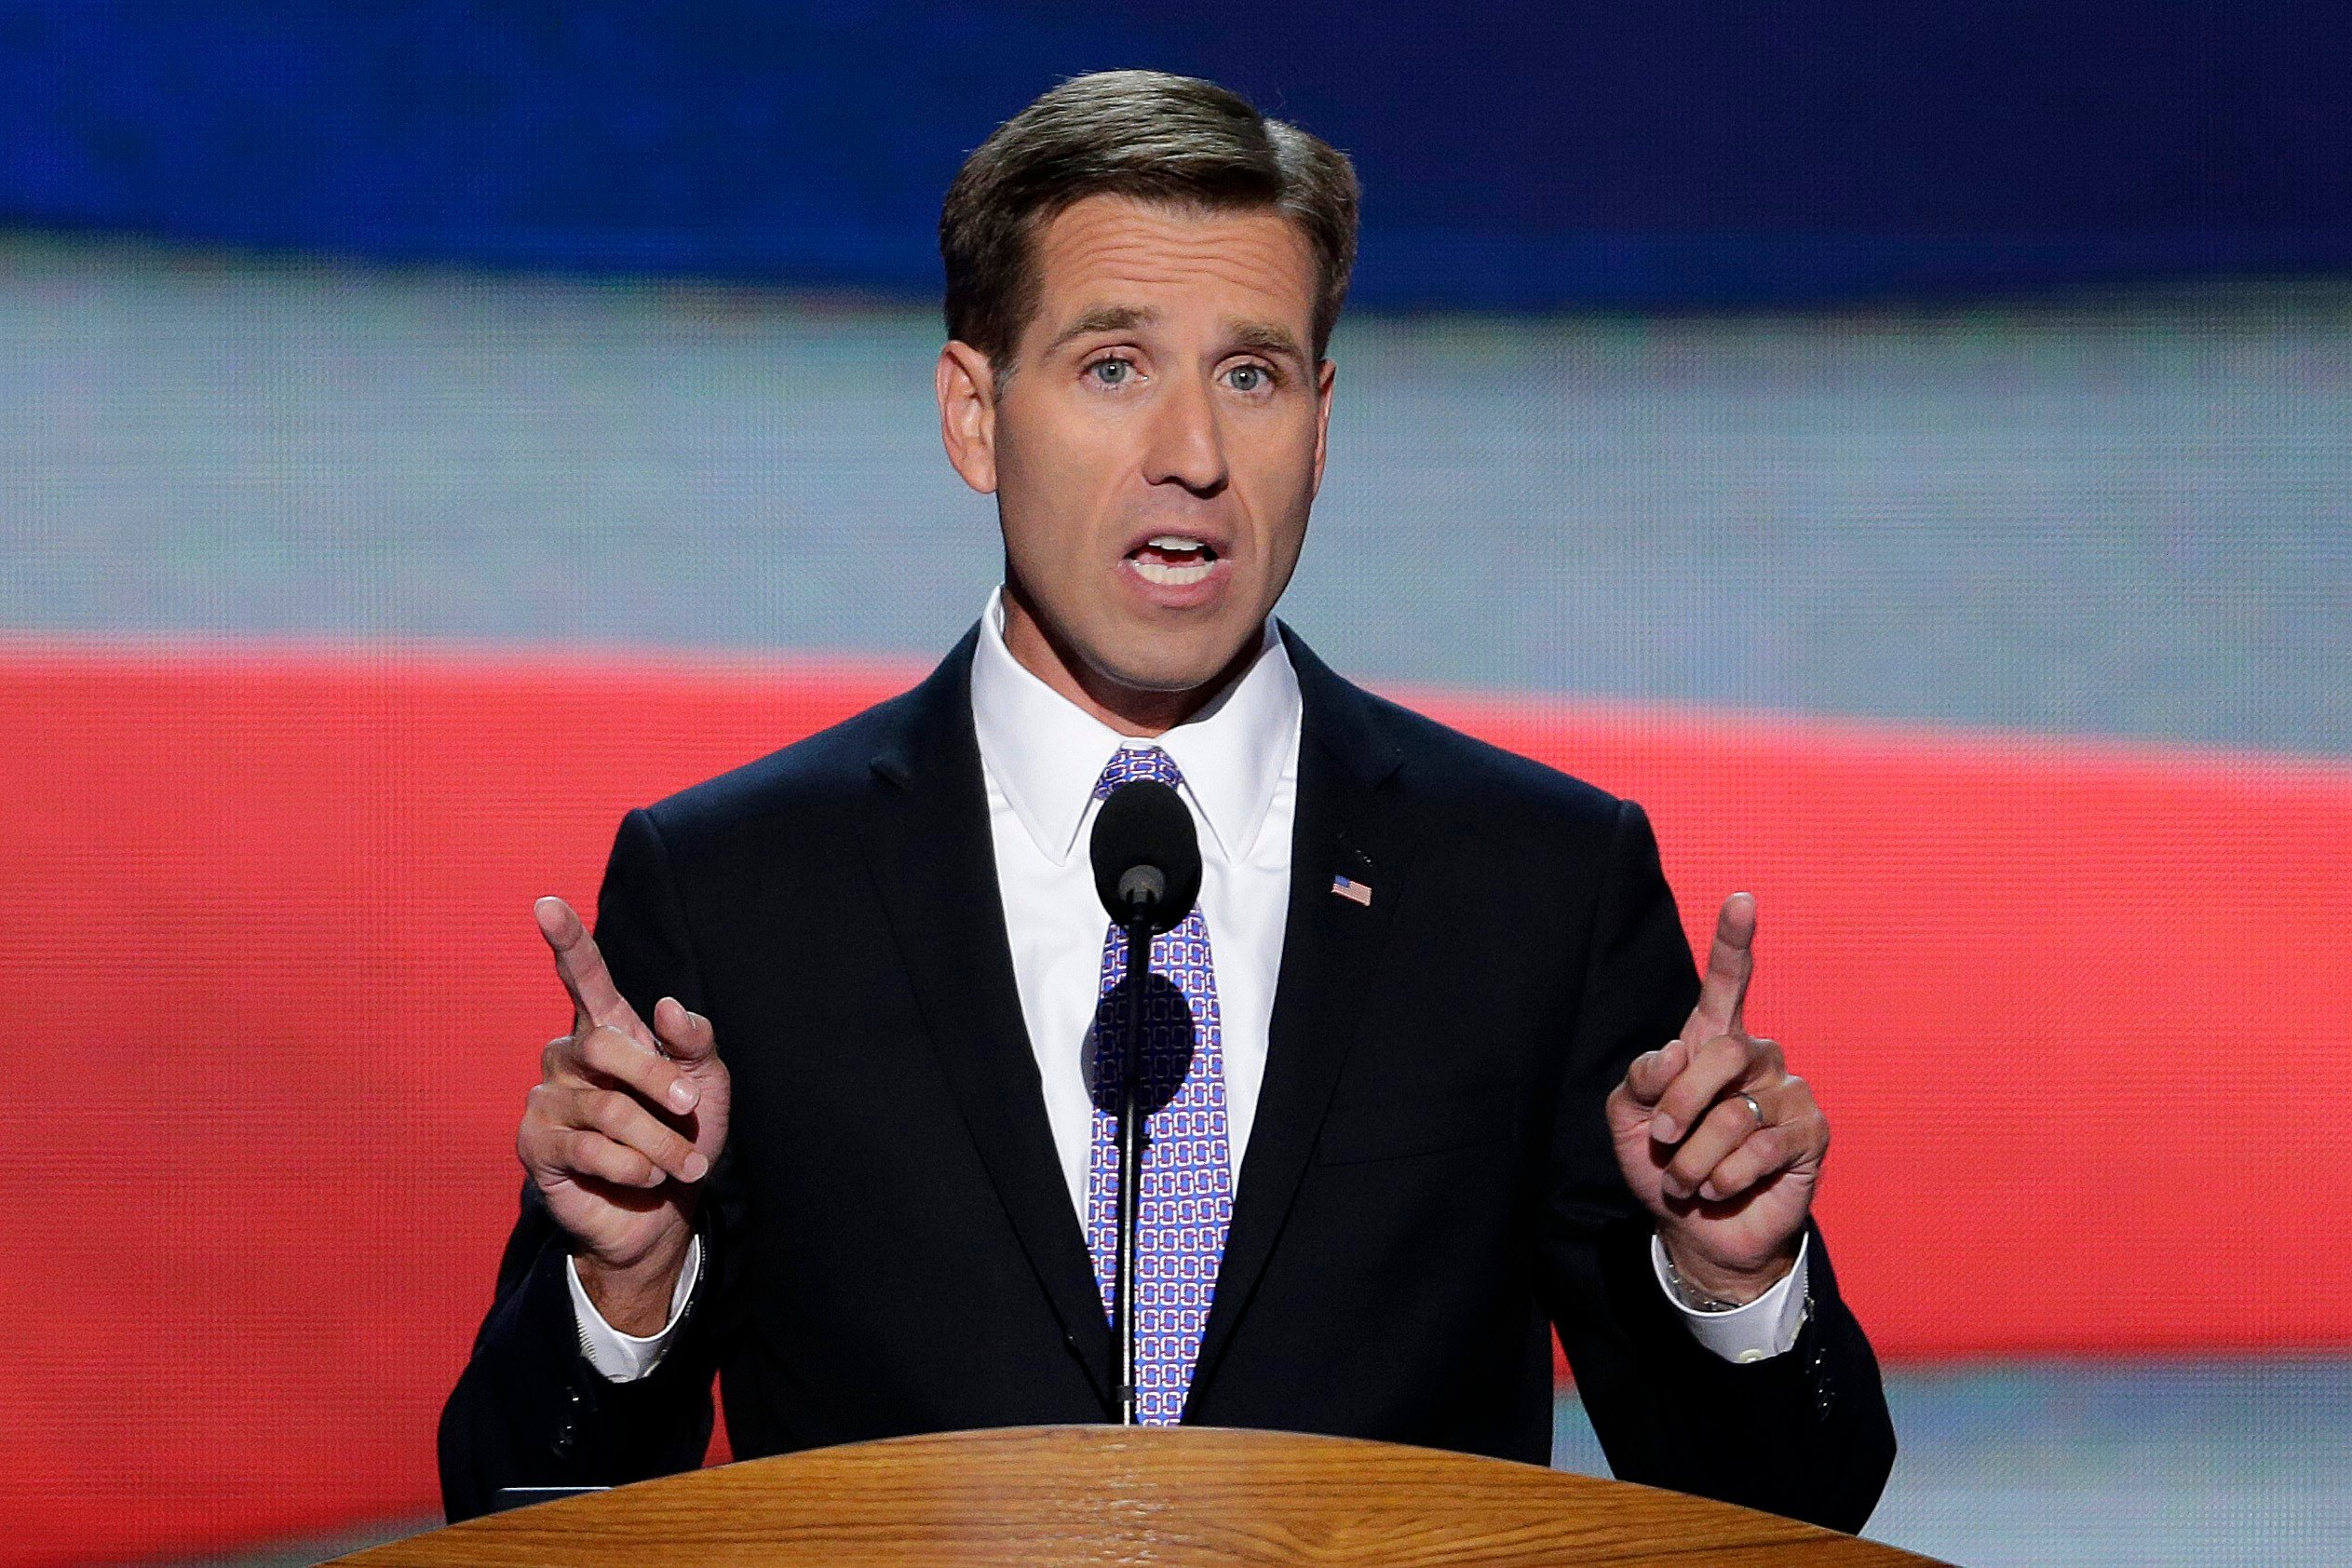 Beau Biden, Attorney General of Delaware and son of Vice President Joe Biden nominated his father for the Office of Vice Presdient of the United States during the Democratic National Convention on Sept. 6, 2012. (Source: AP Photo/J. Scott Applewhite)